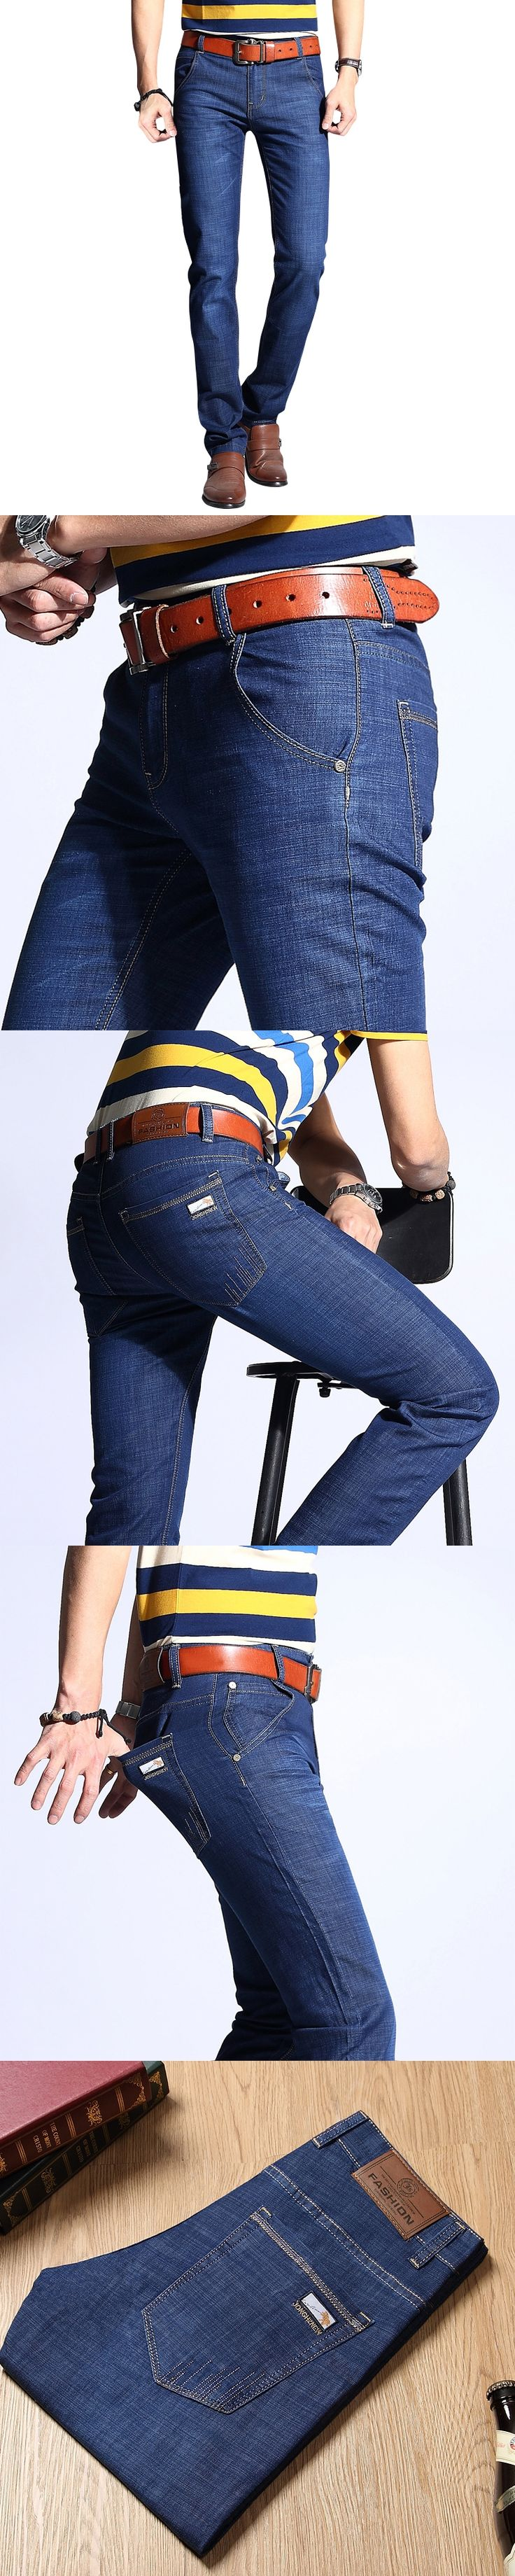 Brand New Fashion Mens Jeans Slim Stretch Pants Thin Denim Trousers Size 32 34 36 38 40  Lightweight Summer Jeans for Men